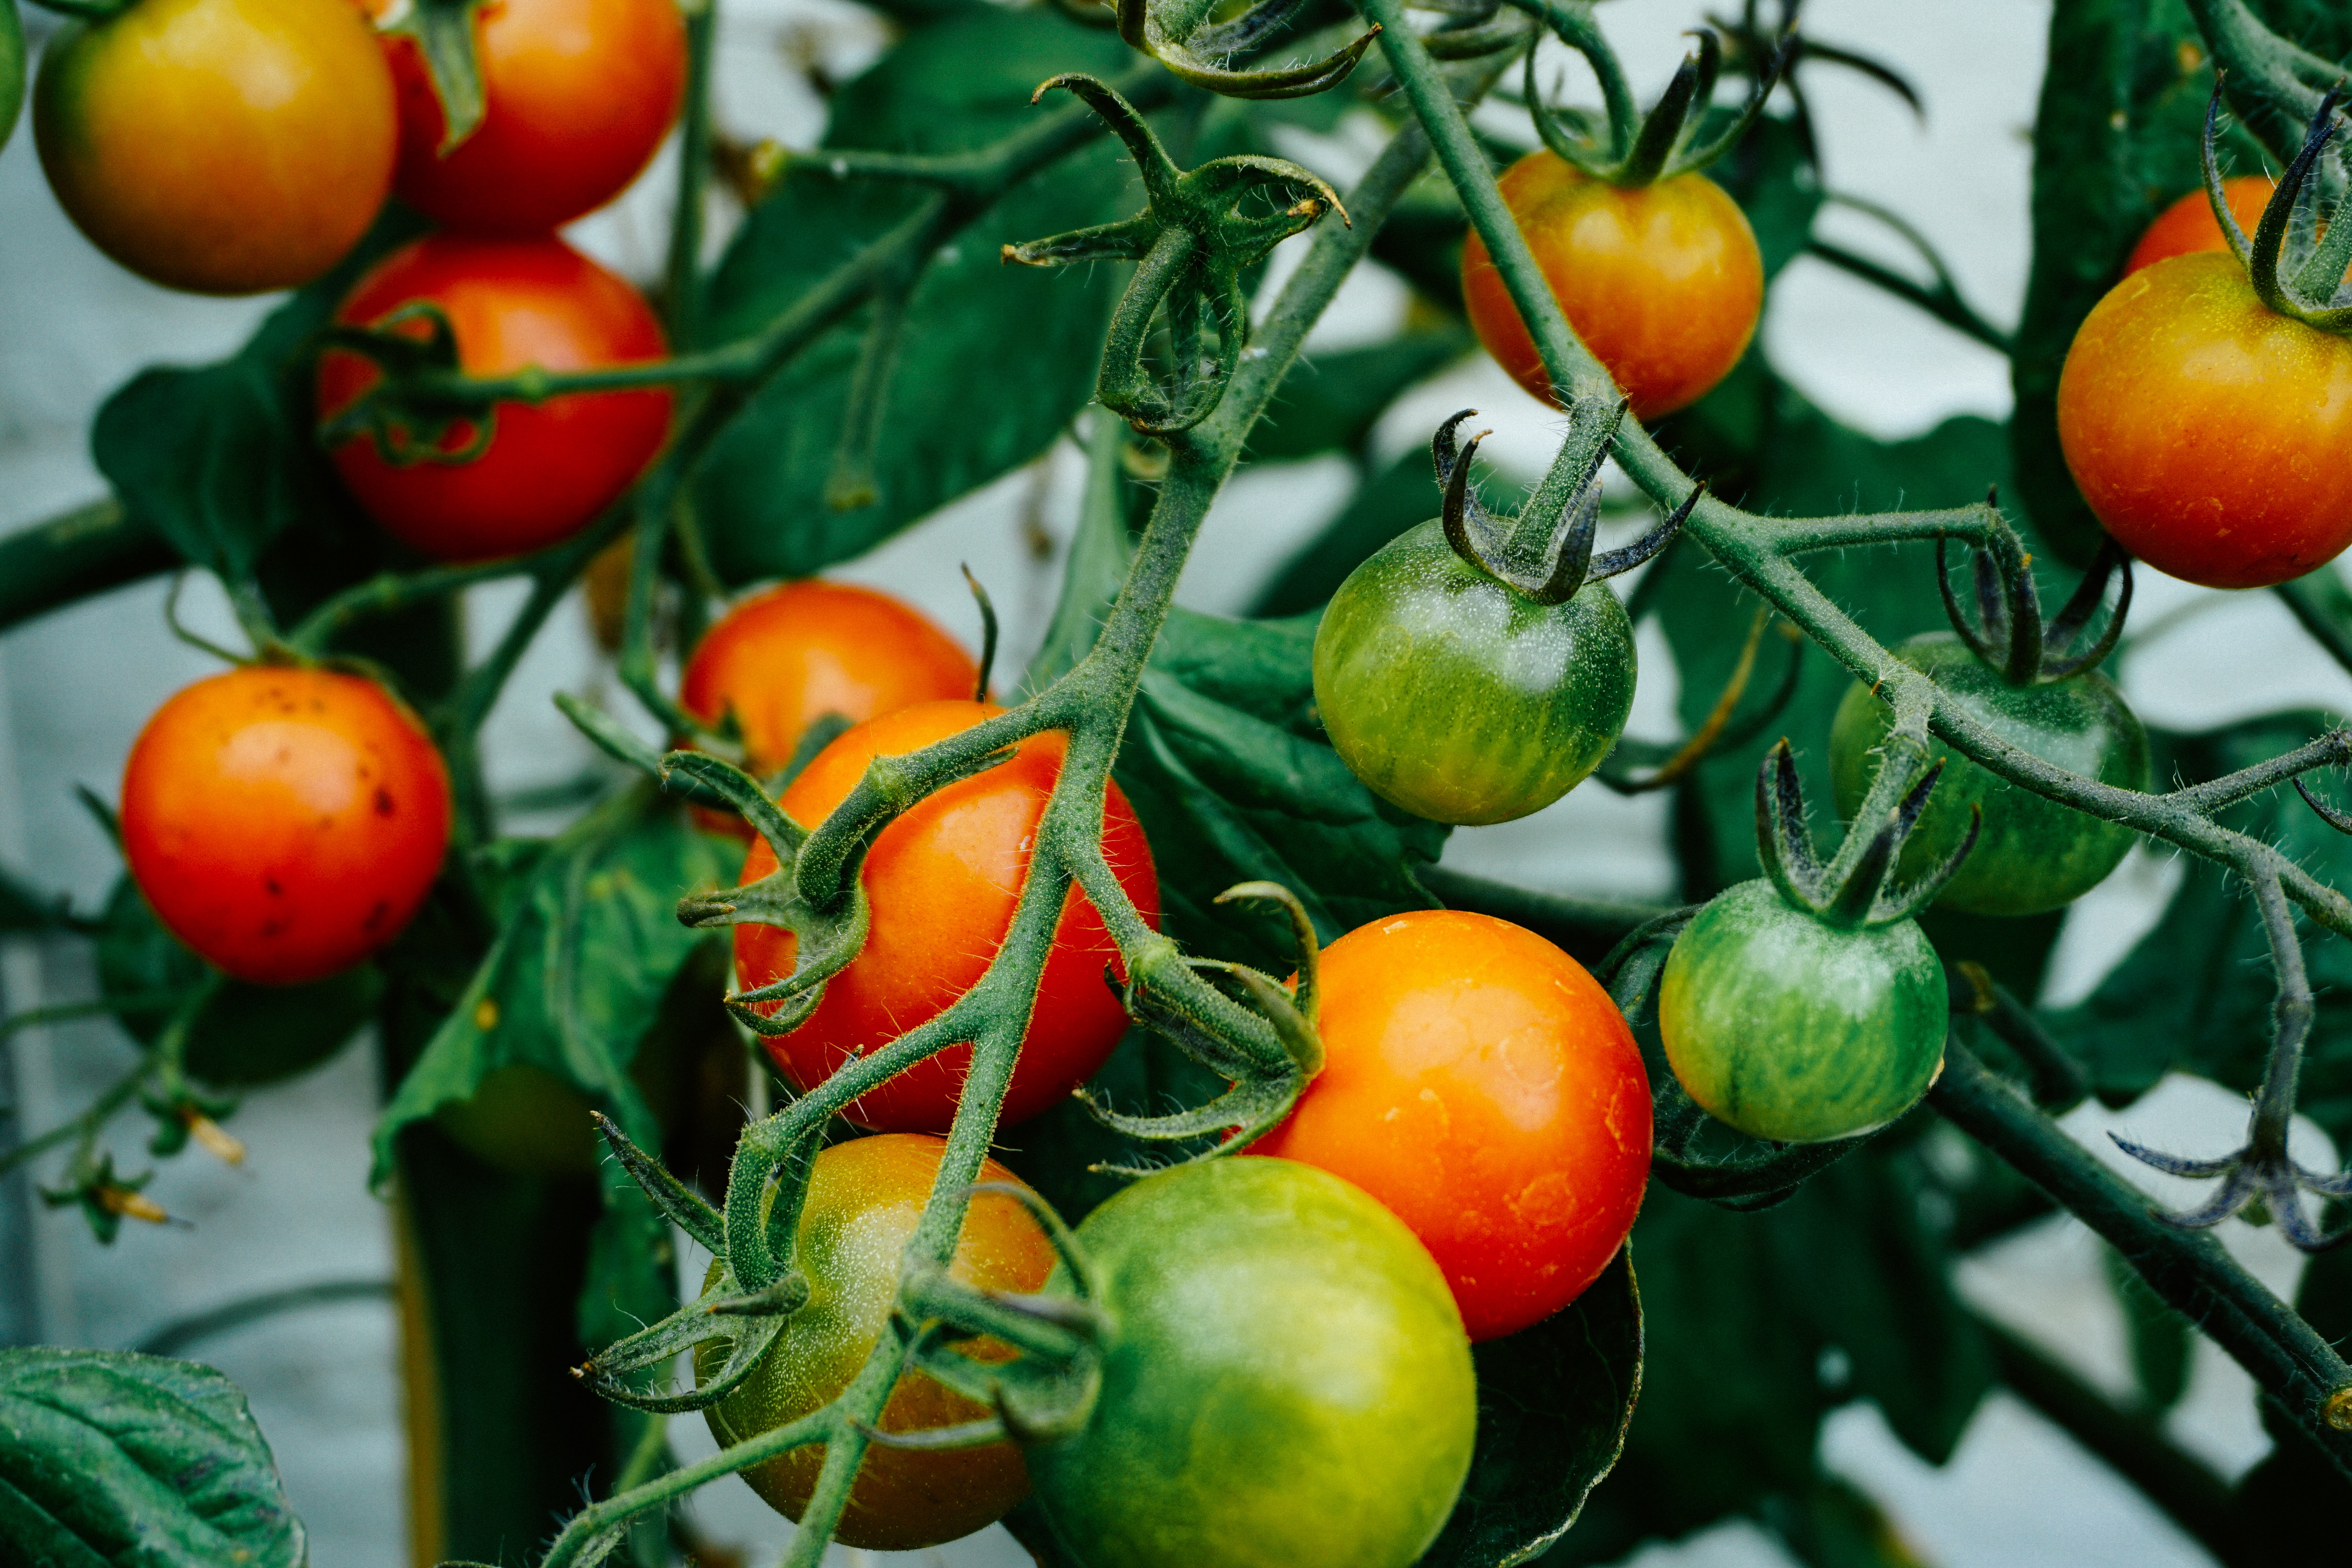 Fresh tomatoes growing on the vine